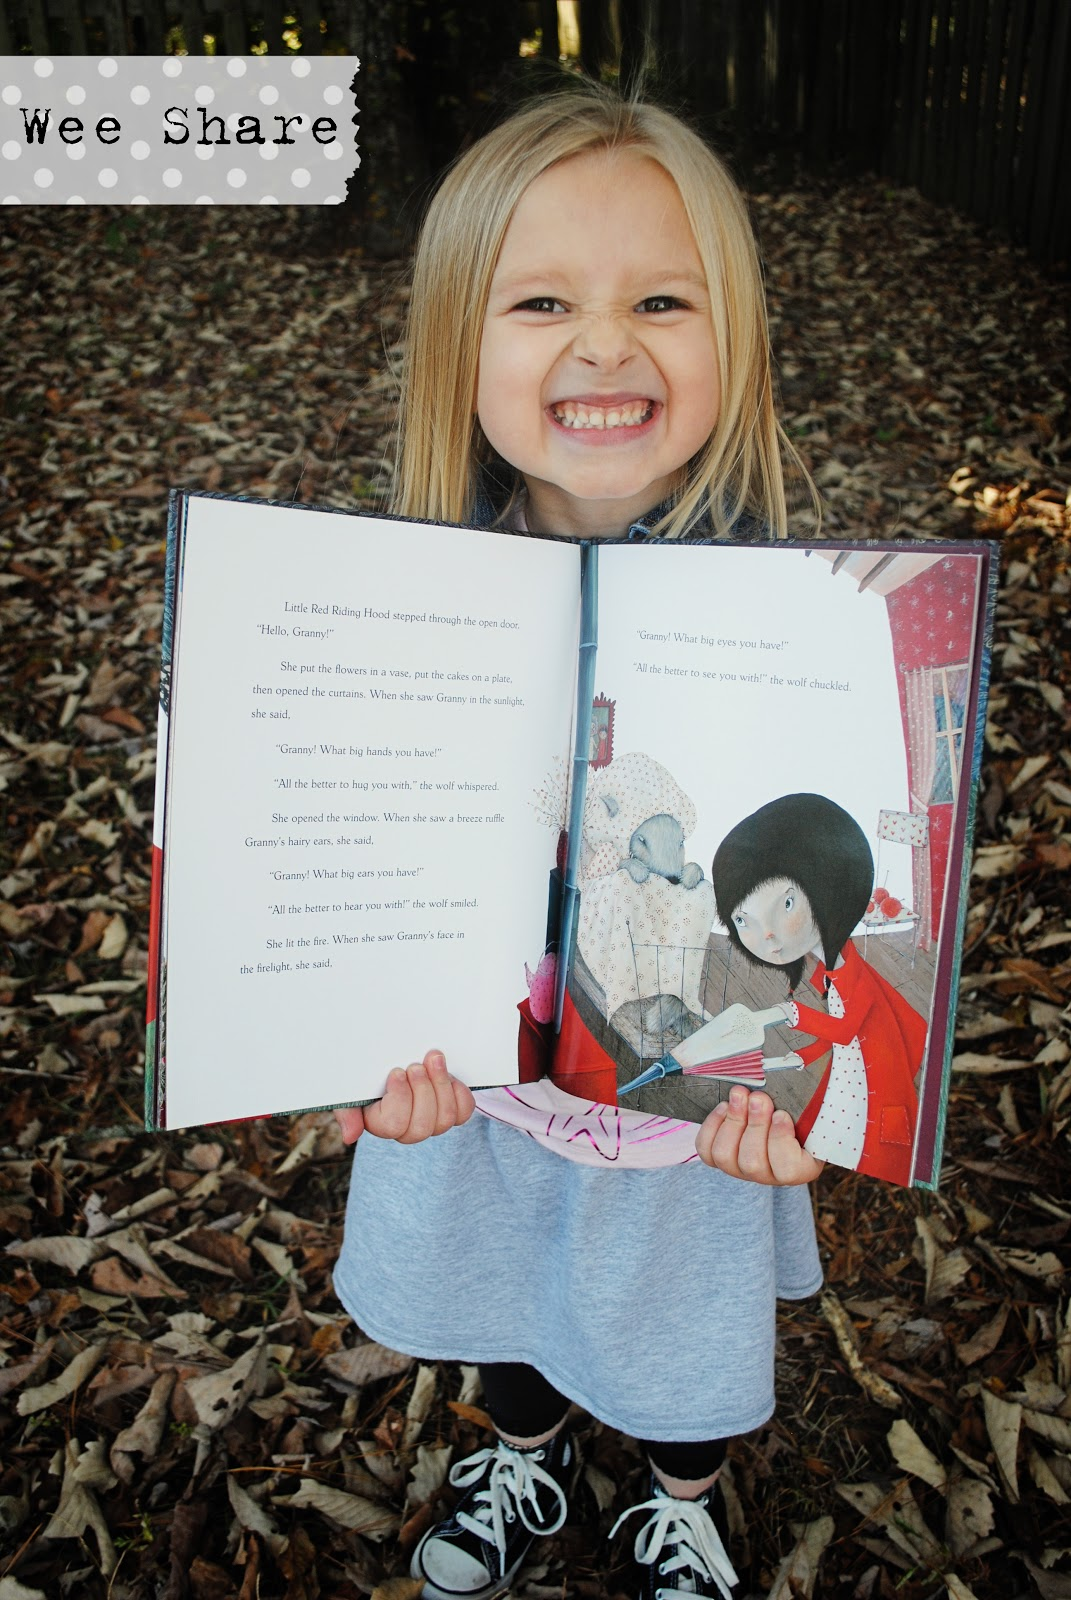 bb1 The Kite Princess and The Little Red Riding Hood Review